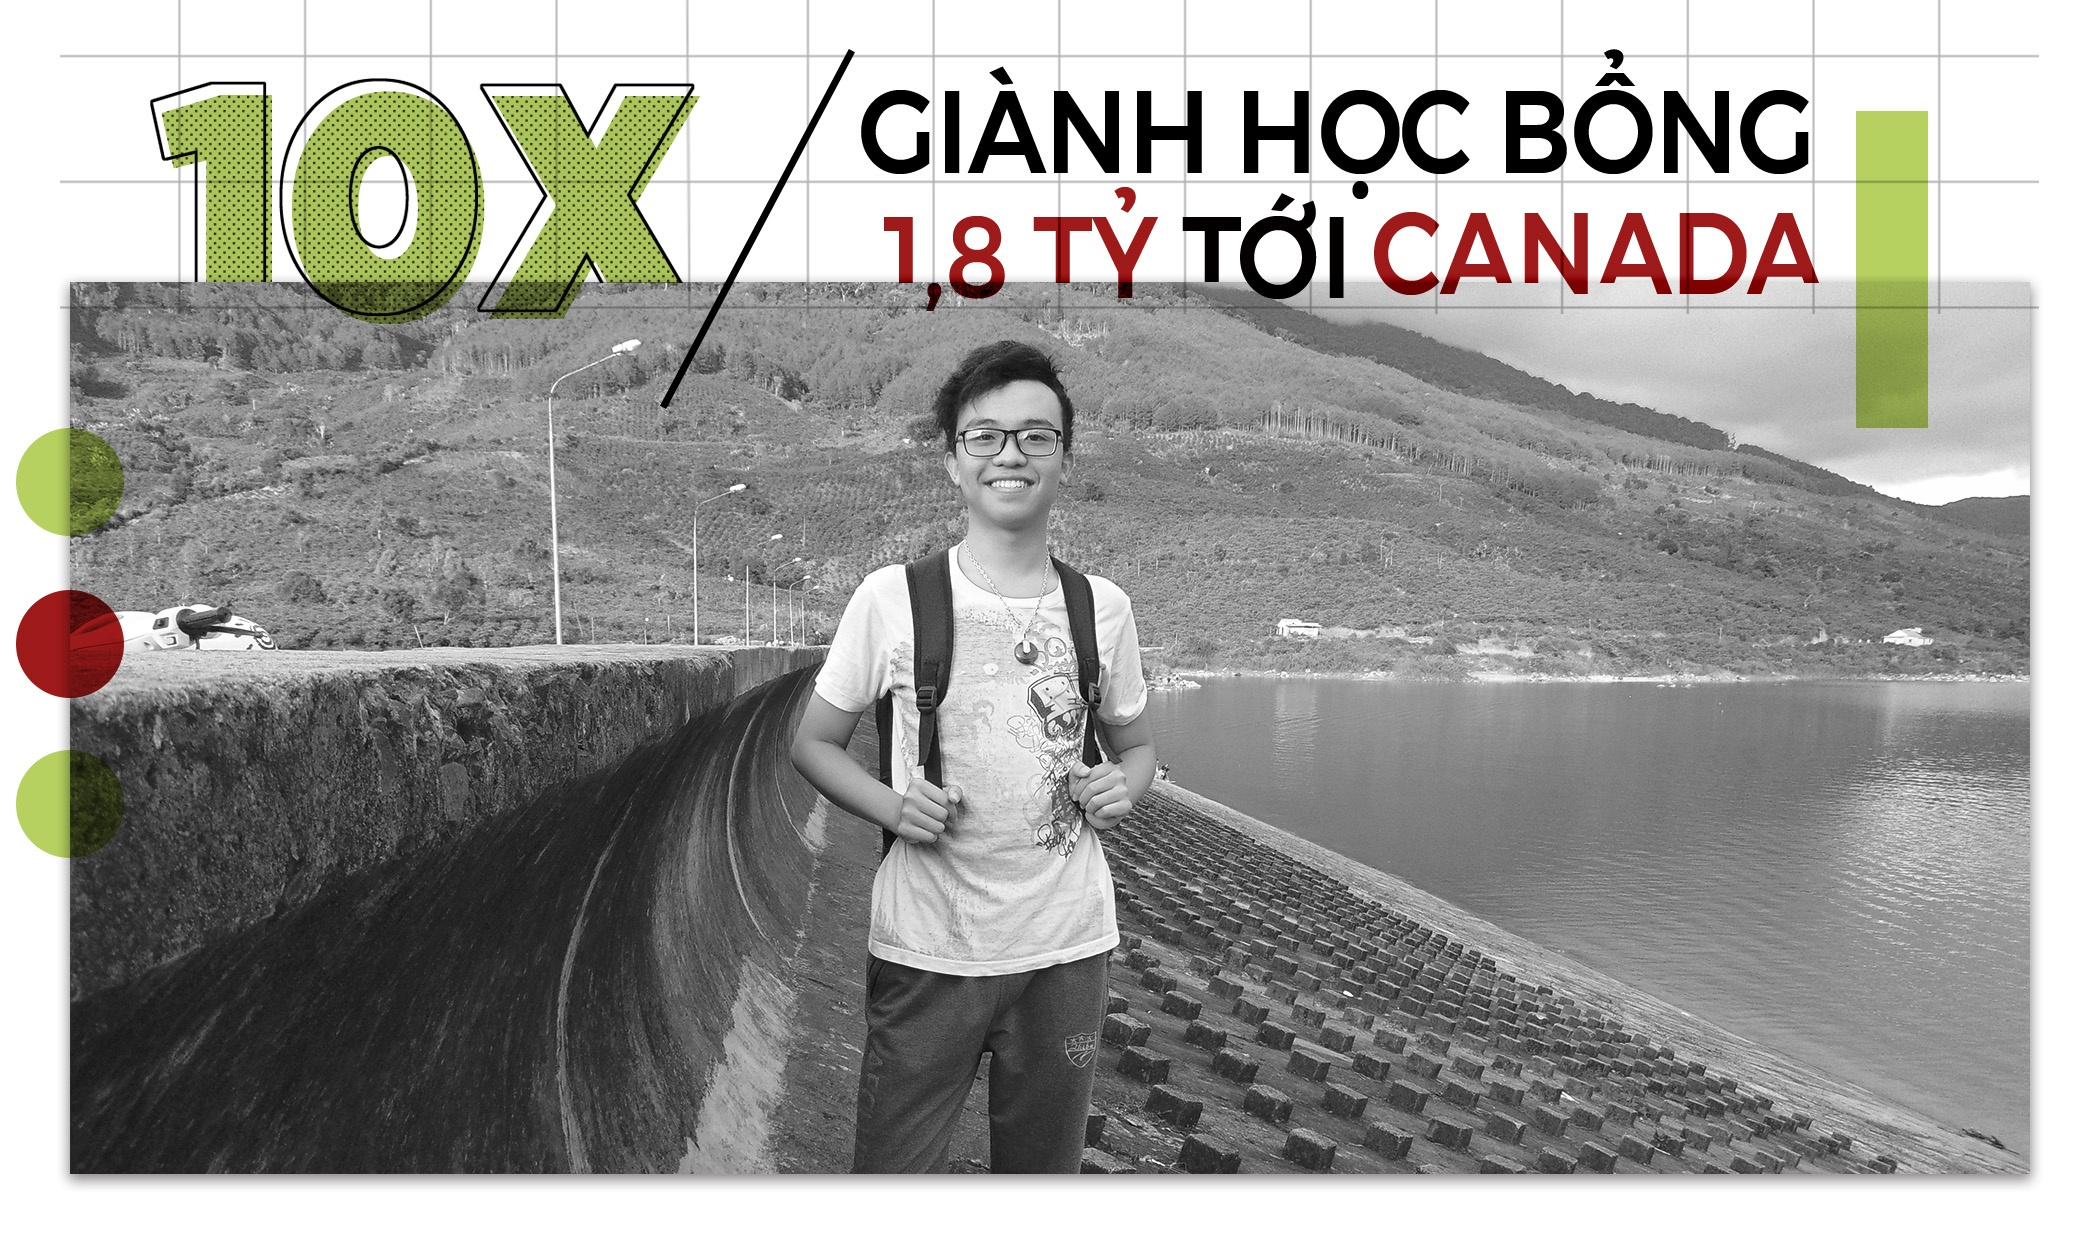 10X Lam Dong gianh hoc bong 1,8 ty toi Canada hinh anh 1